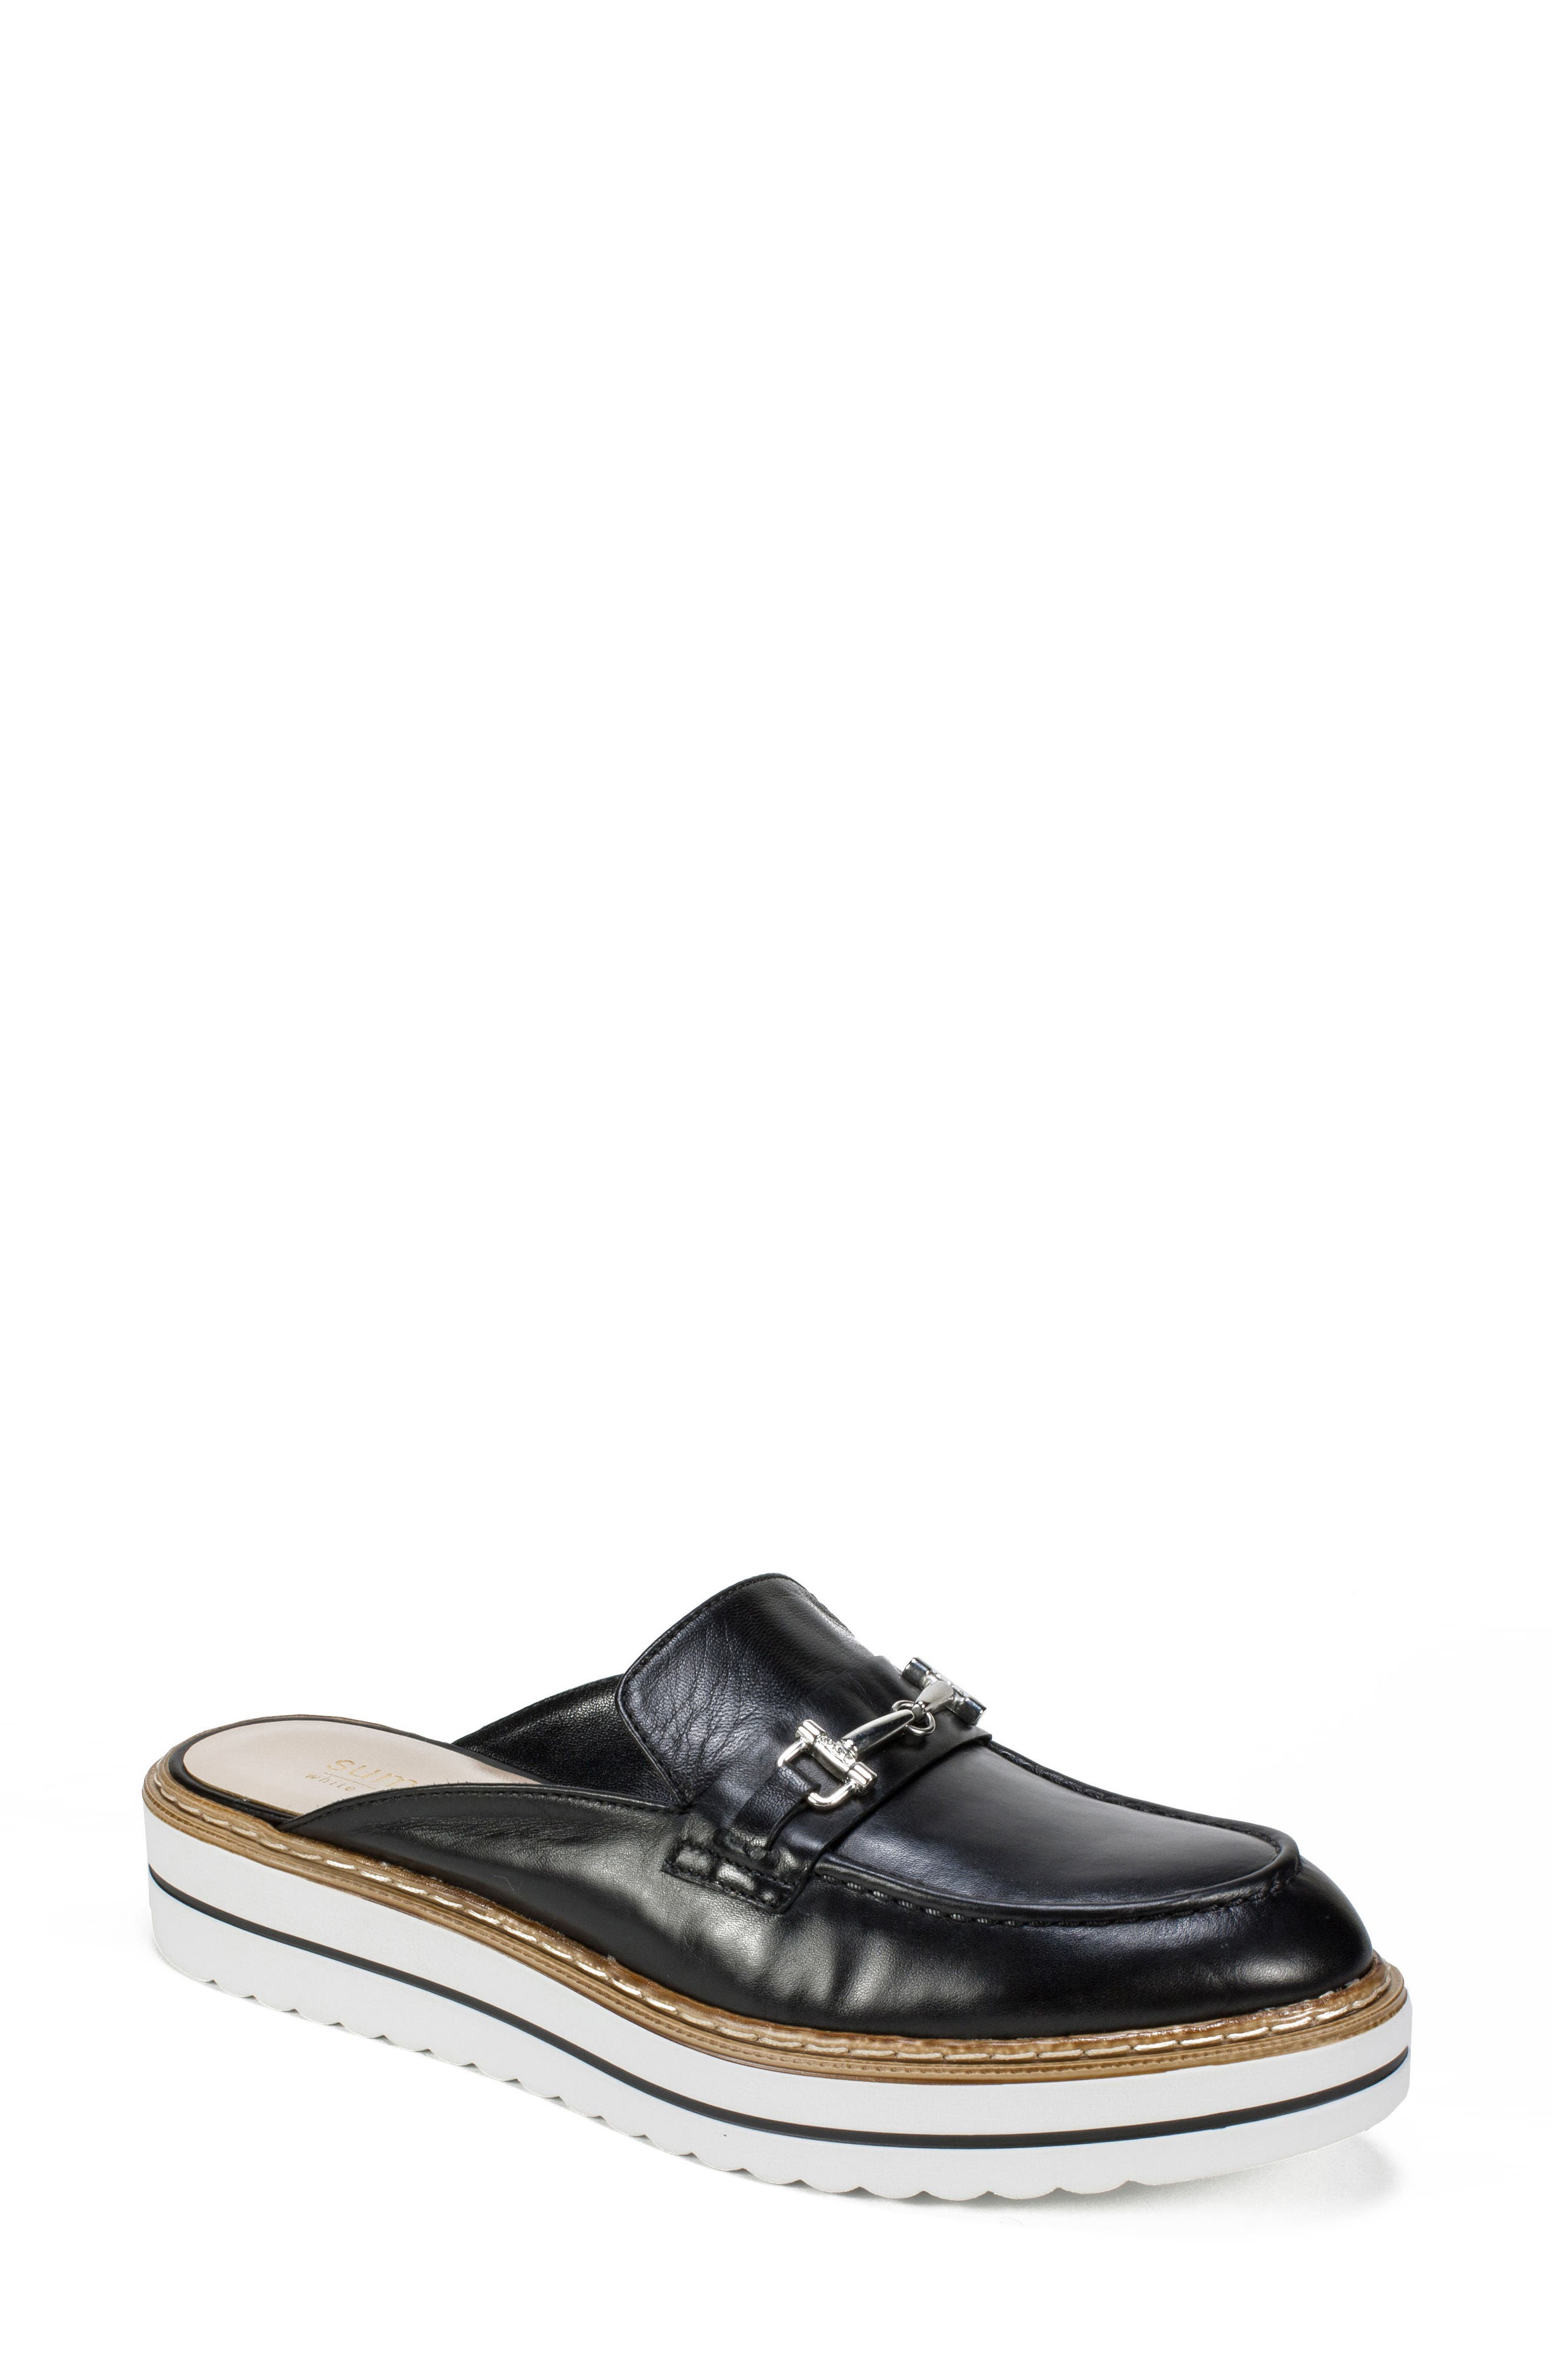 by White Mountain Baline Mule,                             Main thumbnail 1, color,                             Black Leather